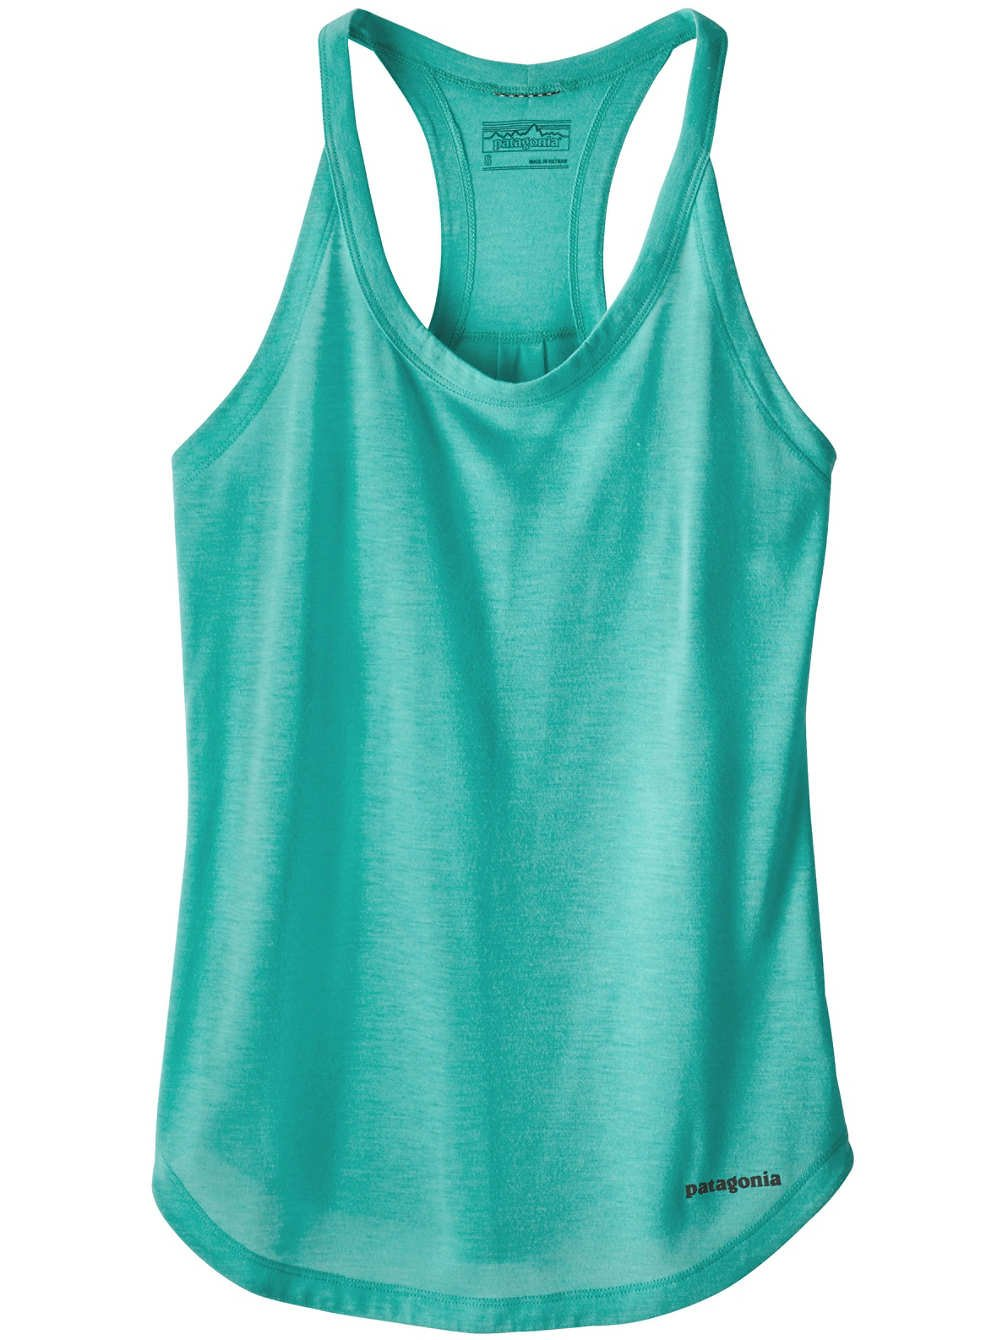 Patagonia Nine Trails Tank Top, Damen Damen L blau (strait blue) 23496